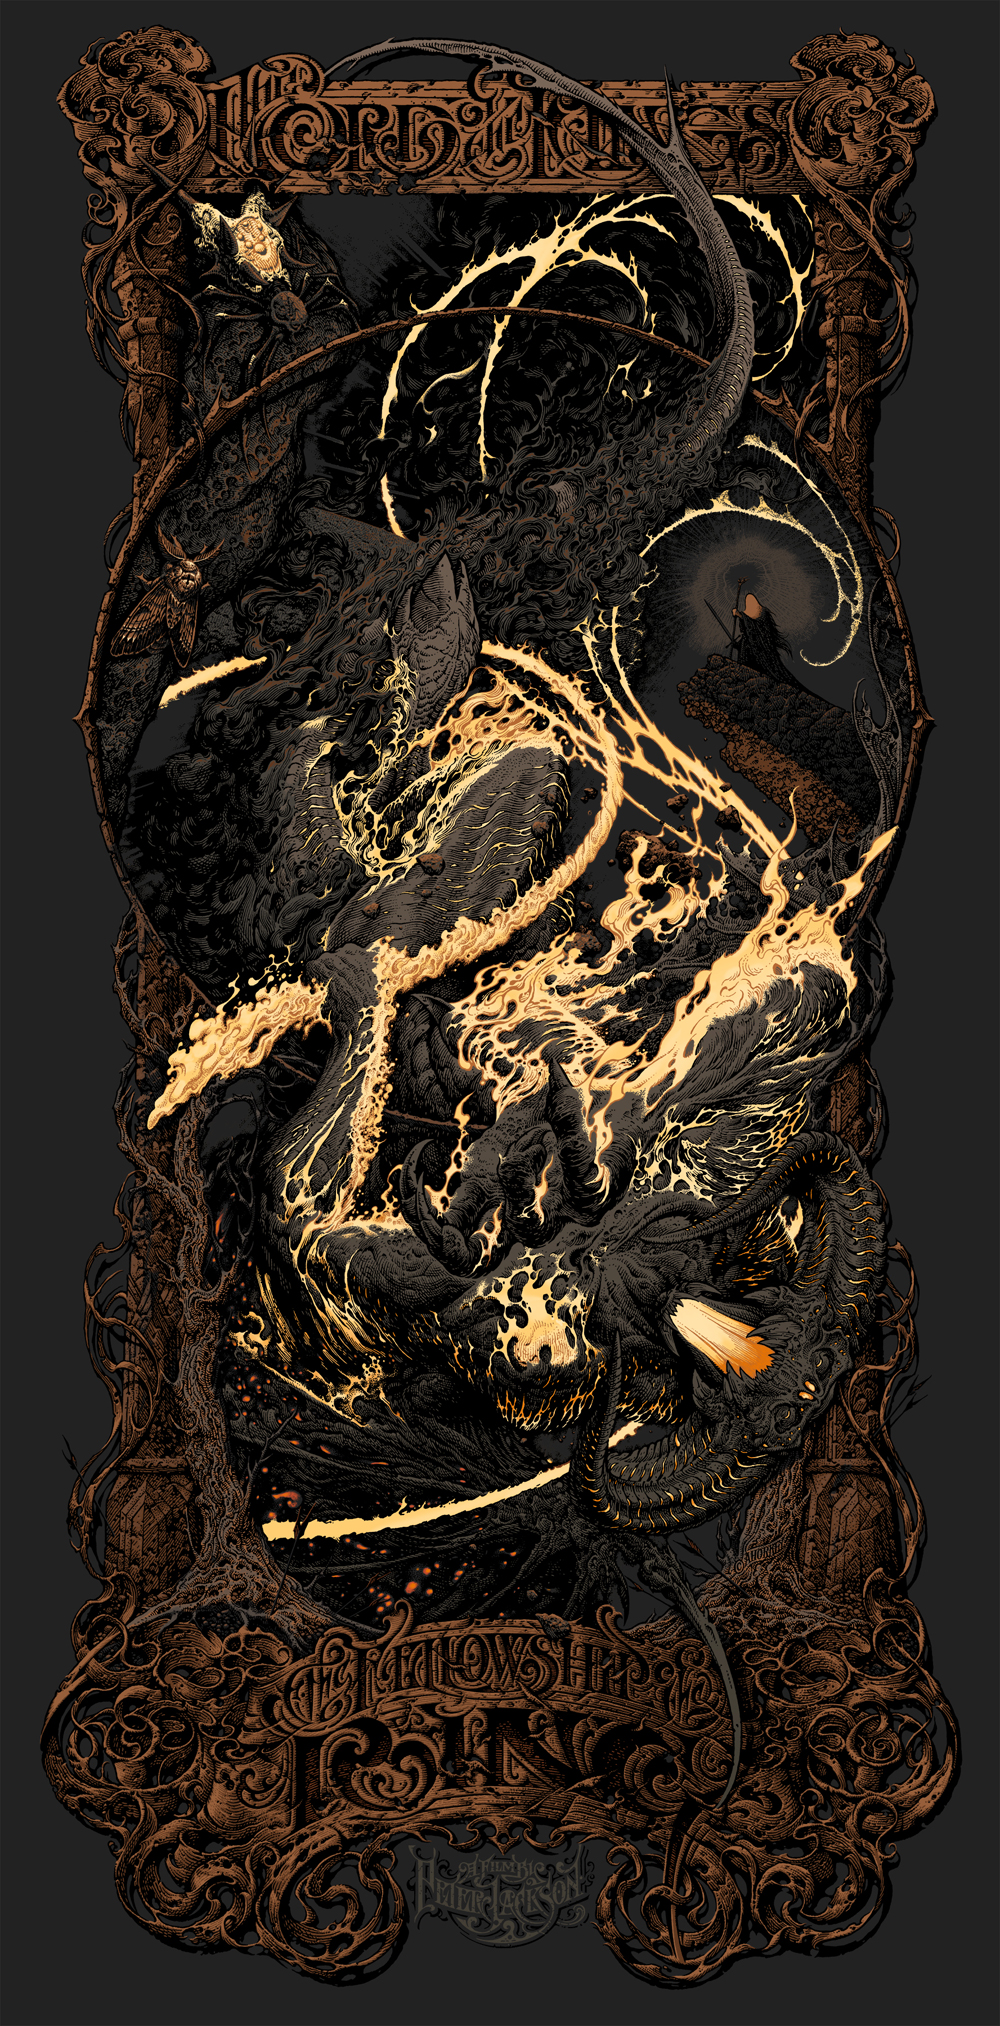 Lord Of The Rings Tarot The Hermit By Sceithailm On: MONDO To Release The Fellowship Of The Ring Print By Aaron